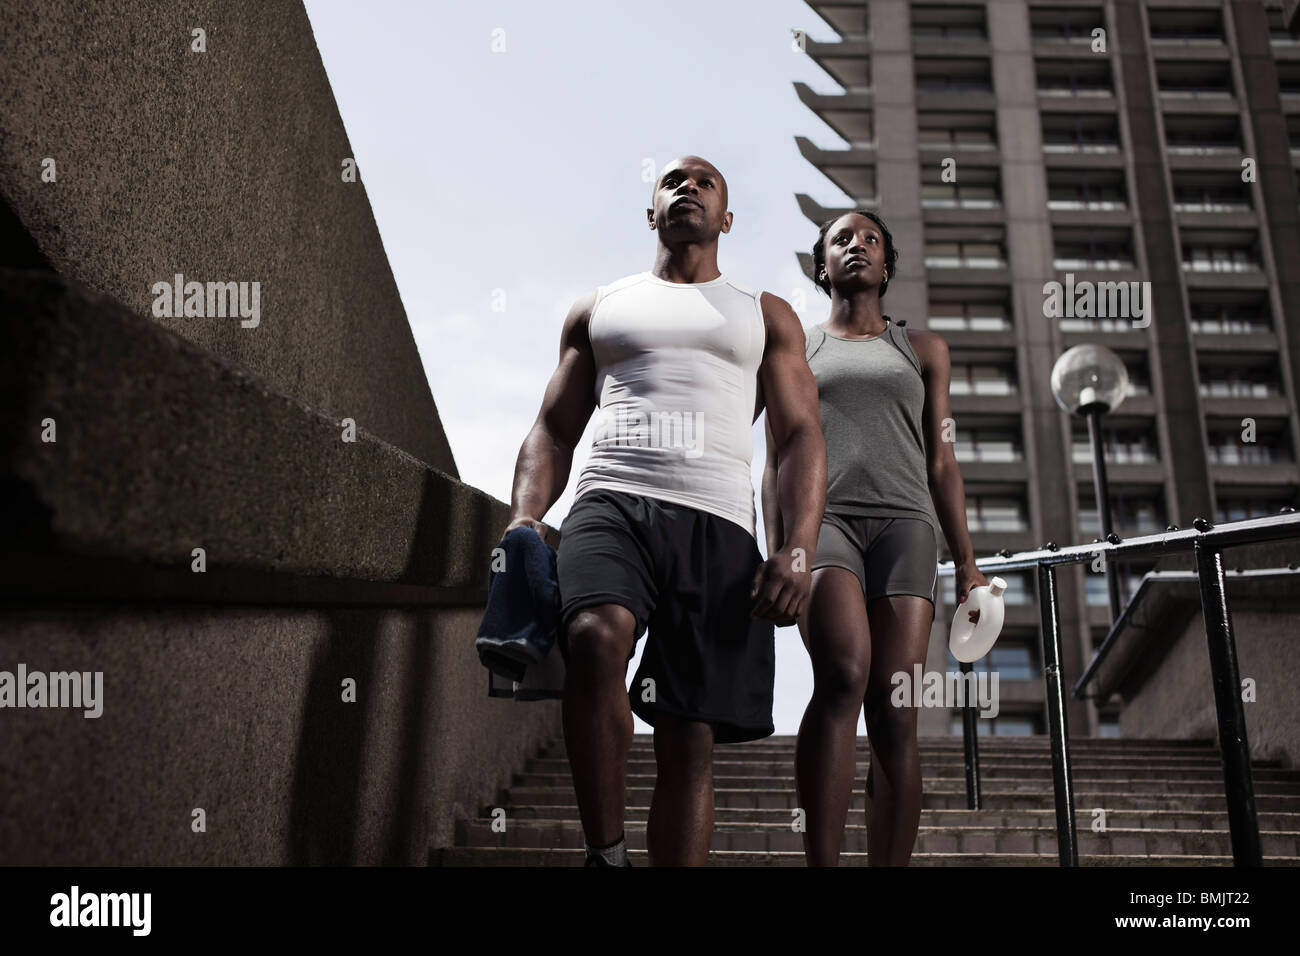 Fit young couple in running wear walking down steps on city estate - Stock Image